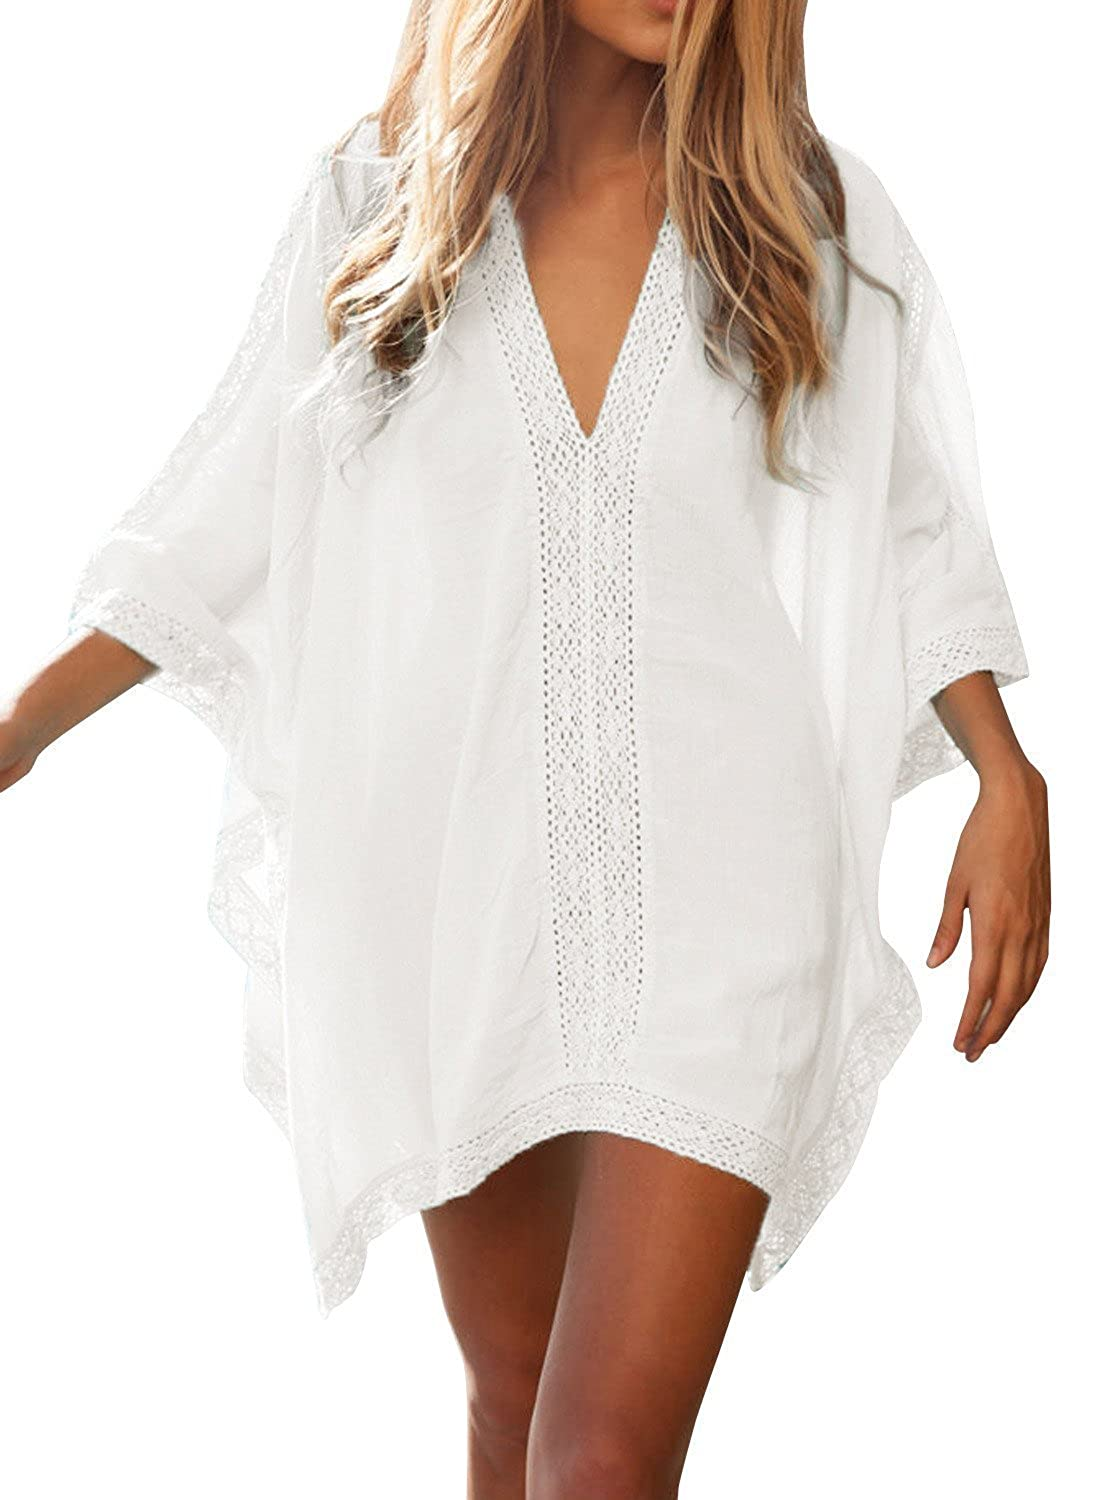 290cc52037e FMing Women's Solid Oversized V-Neck Beach Bikini Cover Up Swimsuit Bathing  Suit Beach Dress White at Amazon Women's Clothing store: